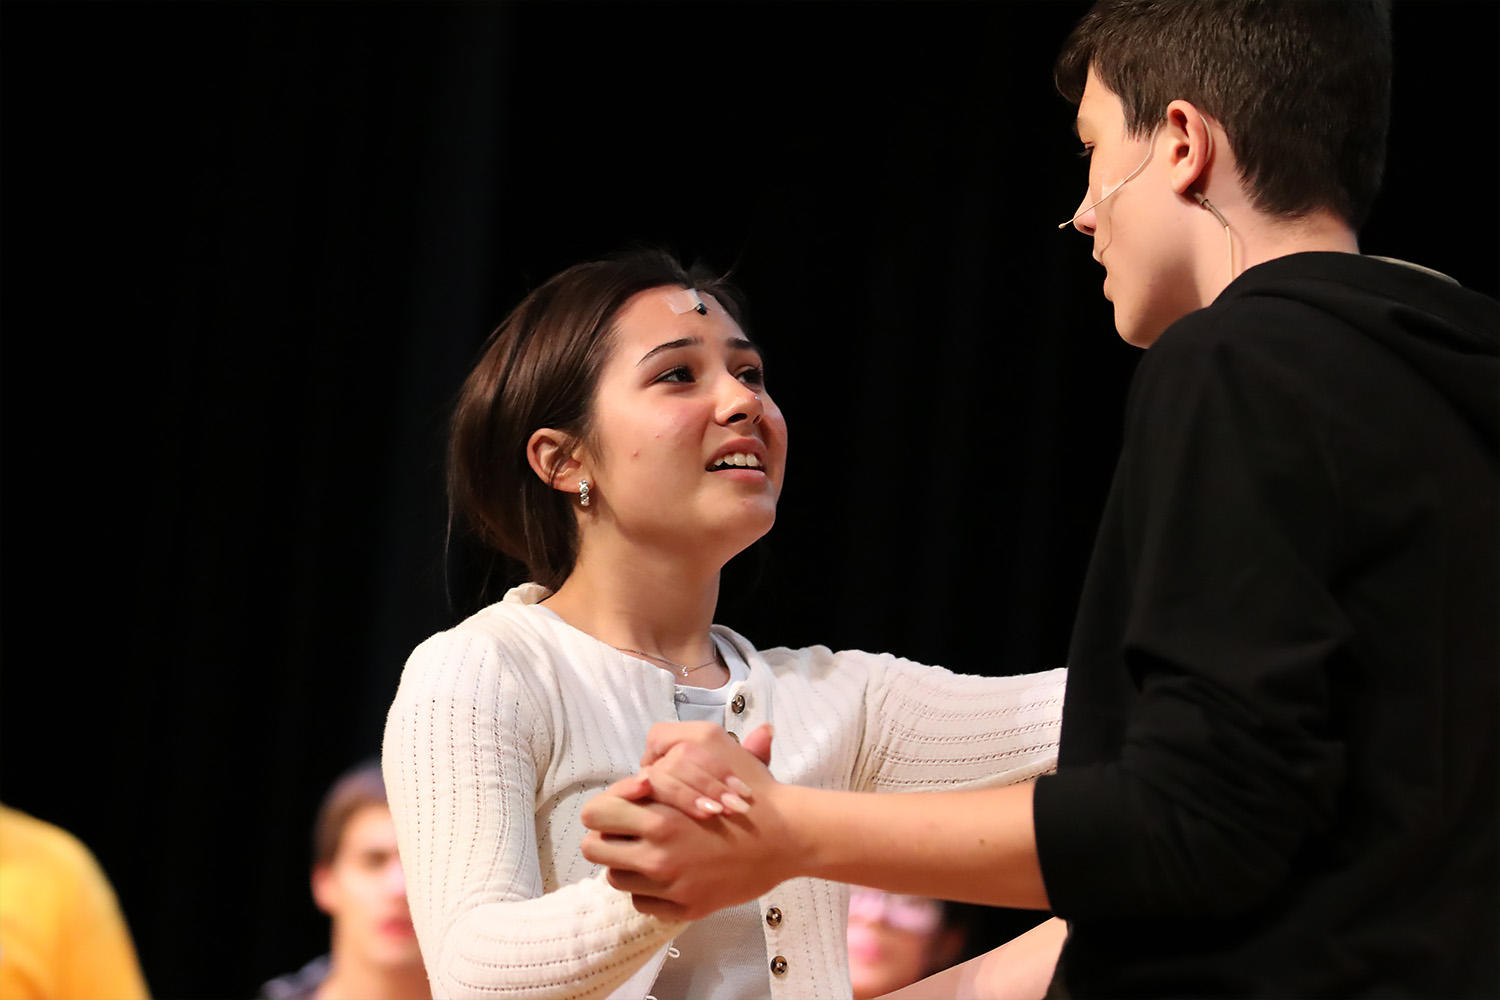 Koko Hristov as Daniel rehearses with sophomore Adreana Duarte in the role of Andrea.